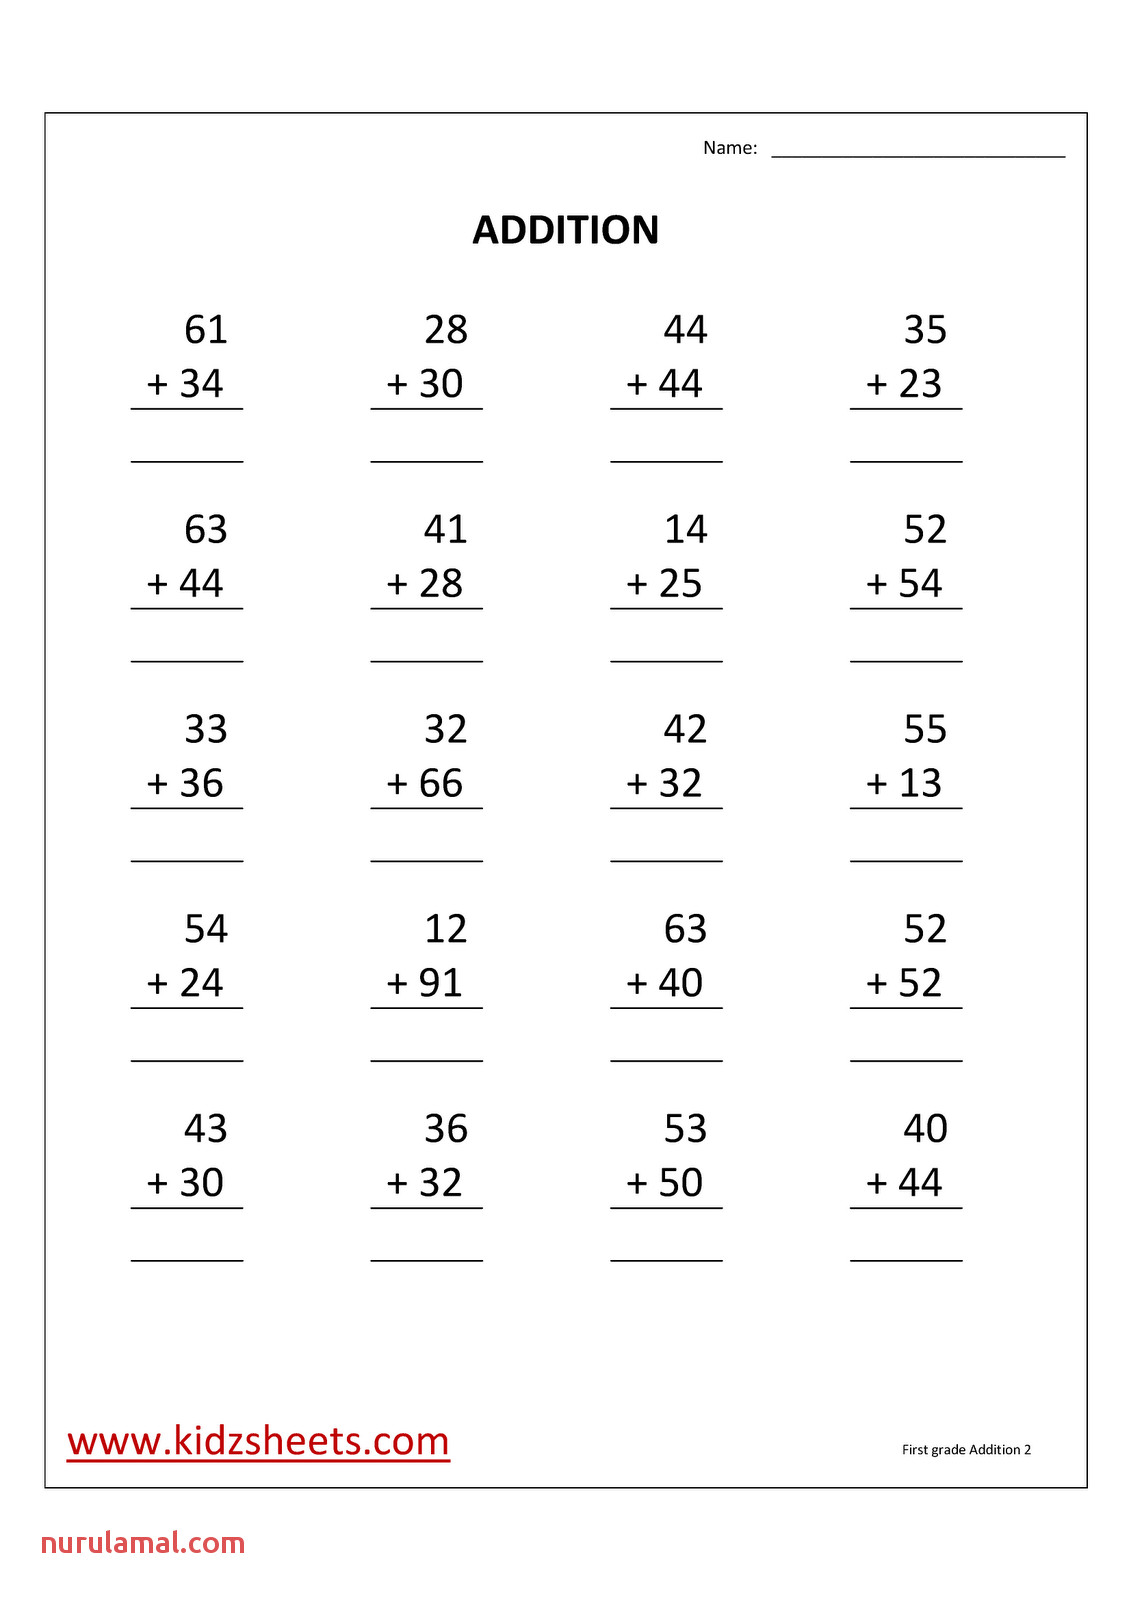 hight resolution of Addition Regrouping Riddle Worksheet   Printable Worksheets and Activities  for Teachers